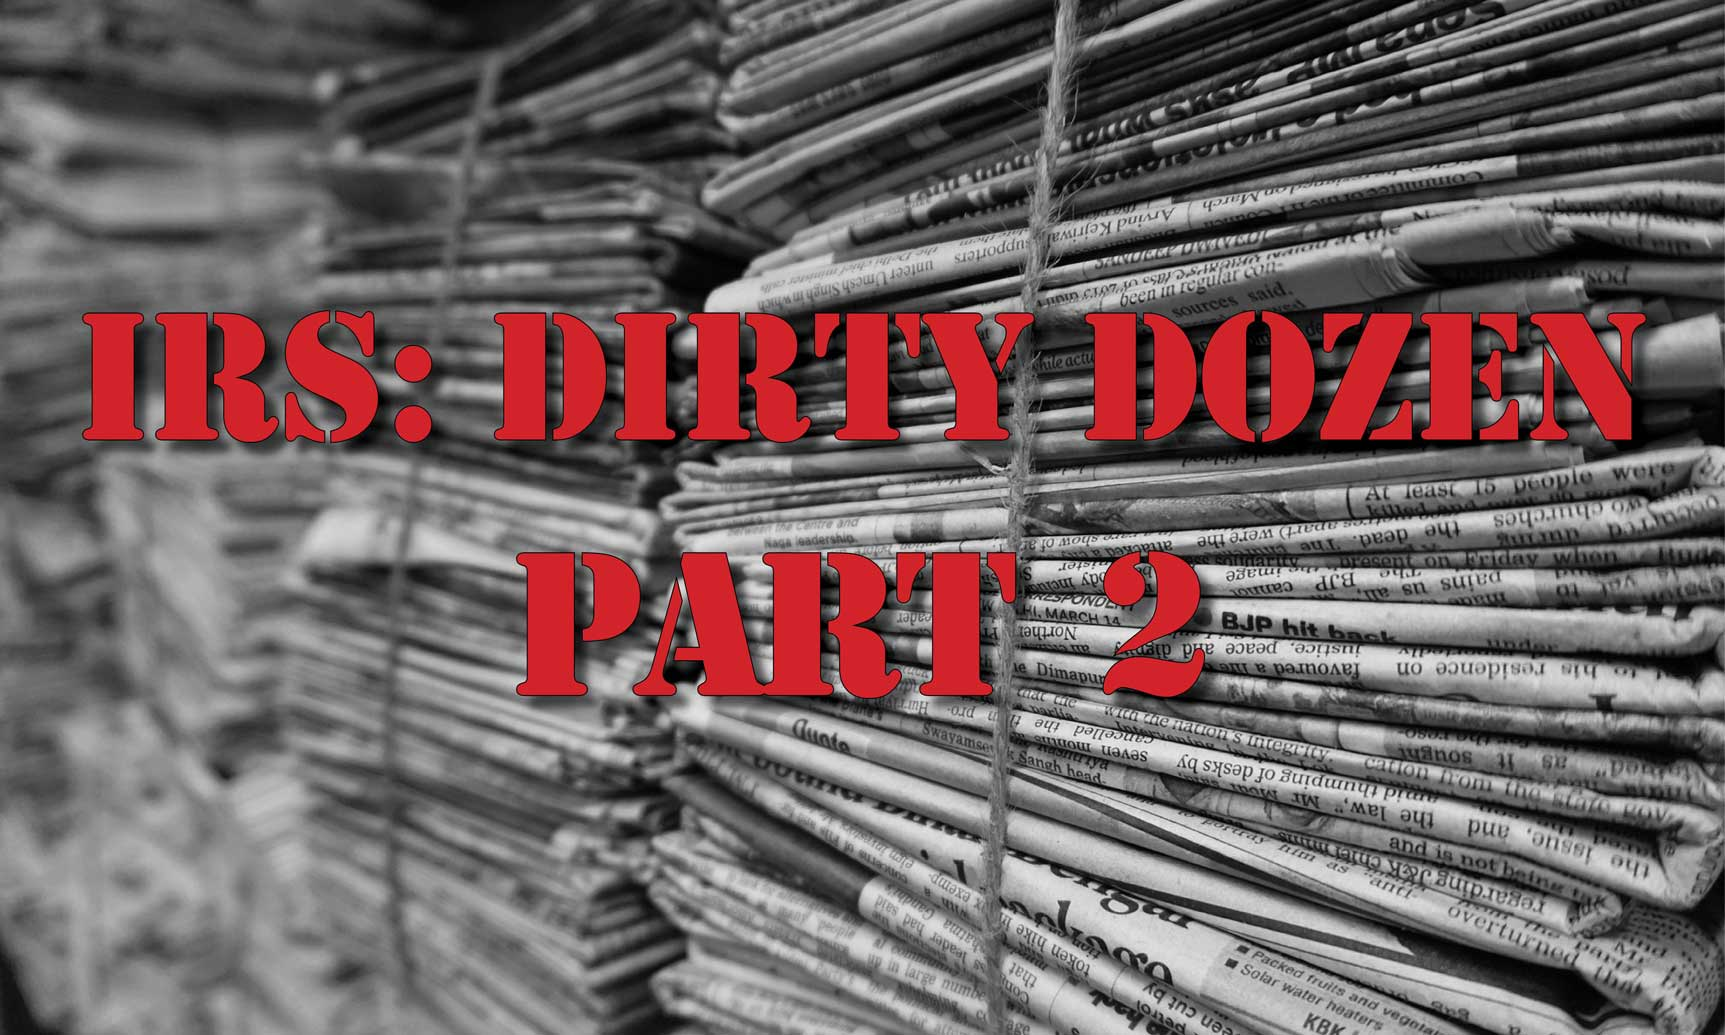 Dirty Dozen Part 2